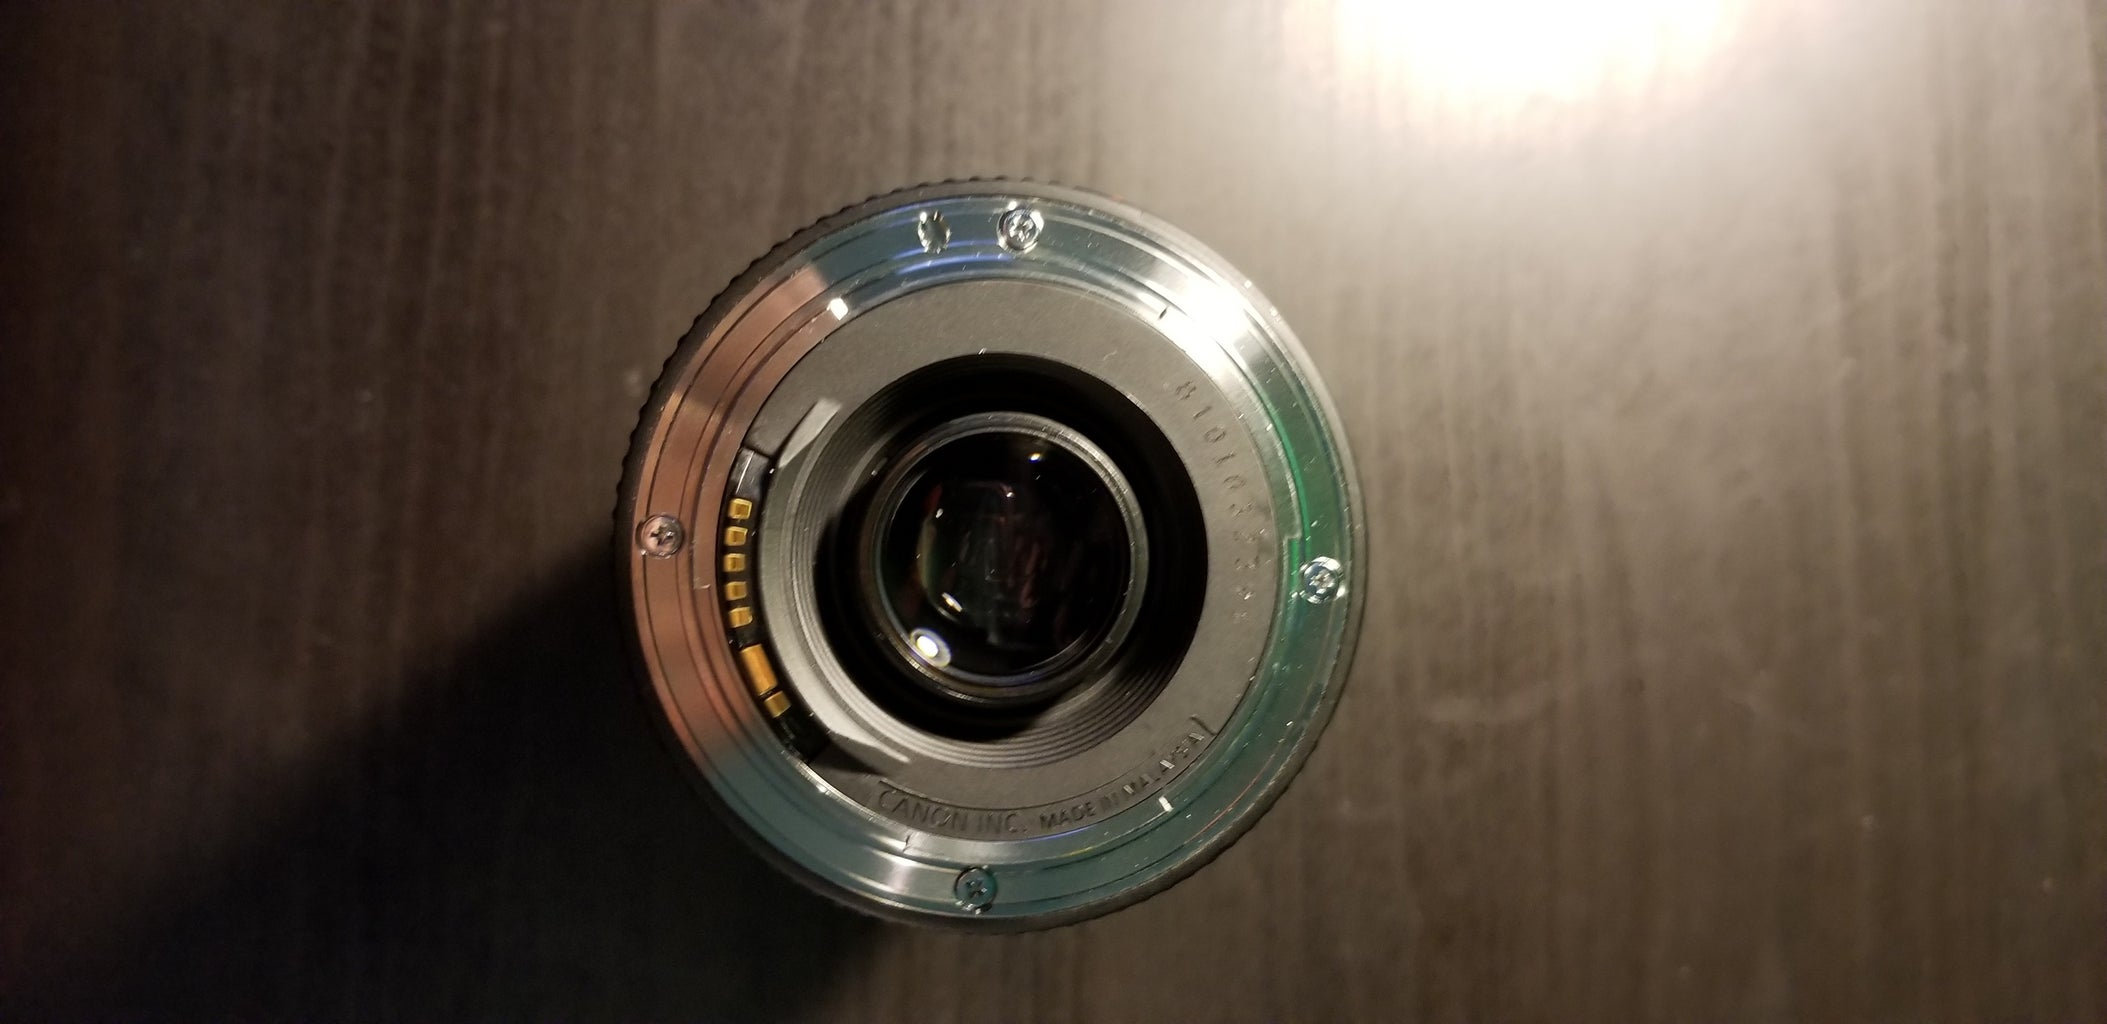 Place the Lens Over the Camera